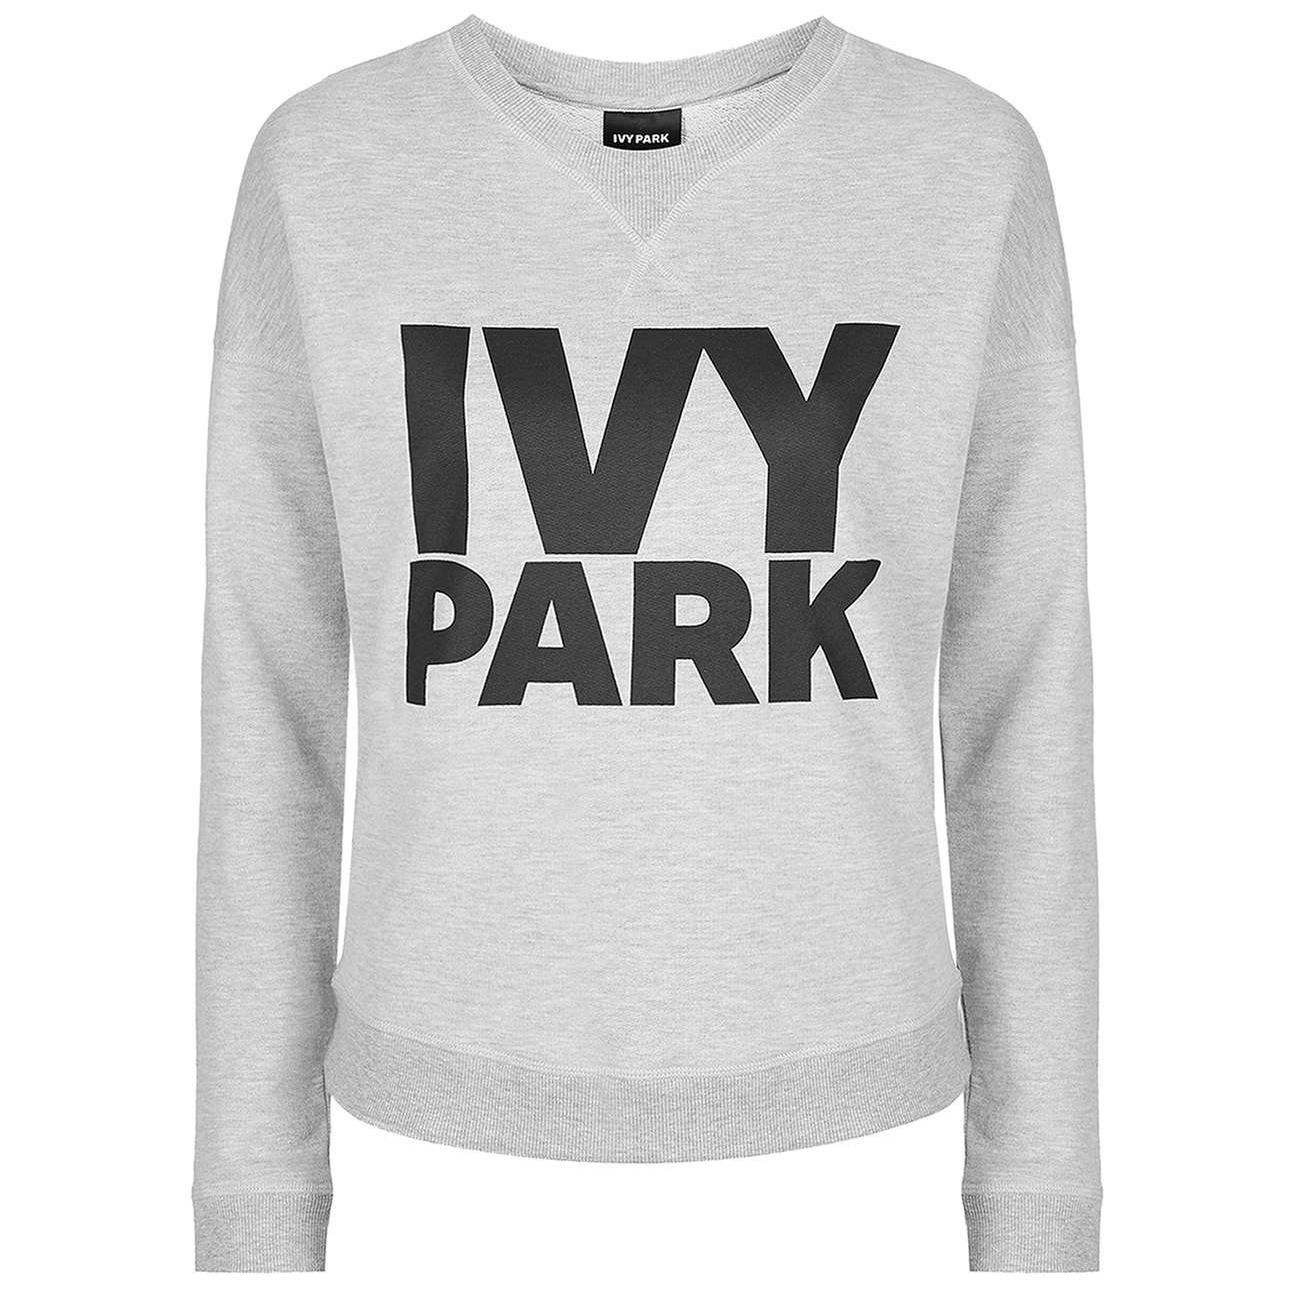 Beyonce - Ivy Park - embed 3